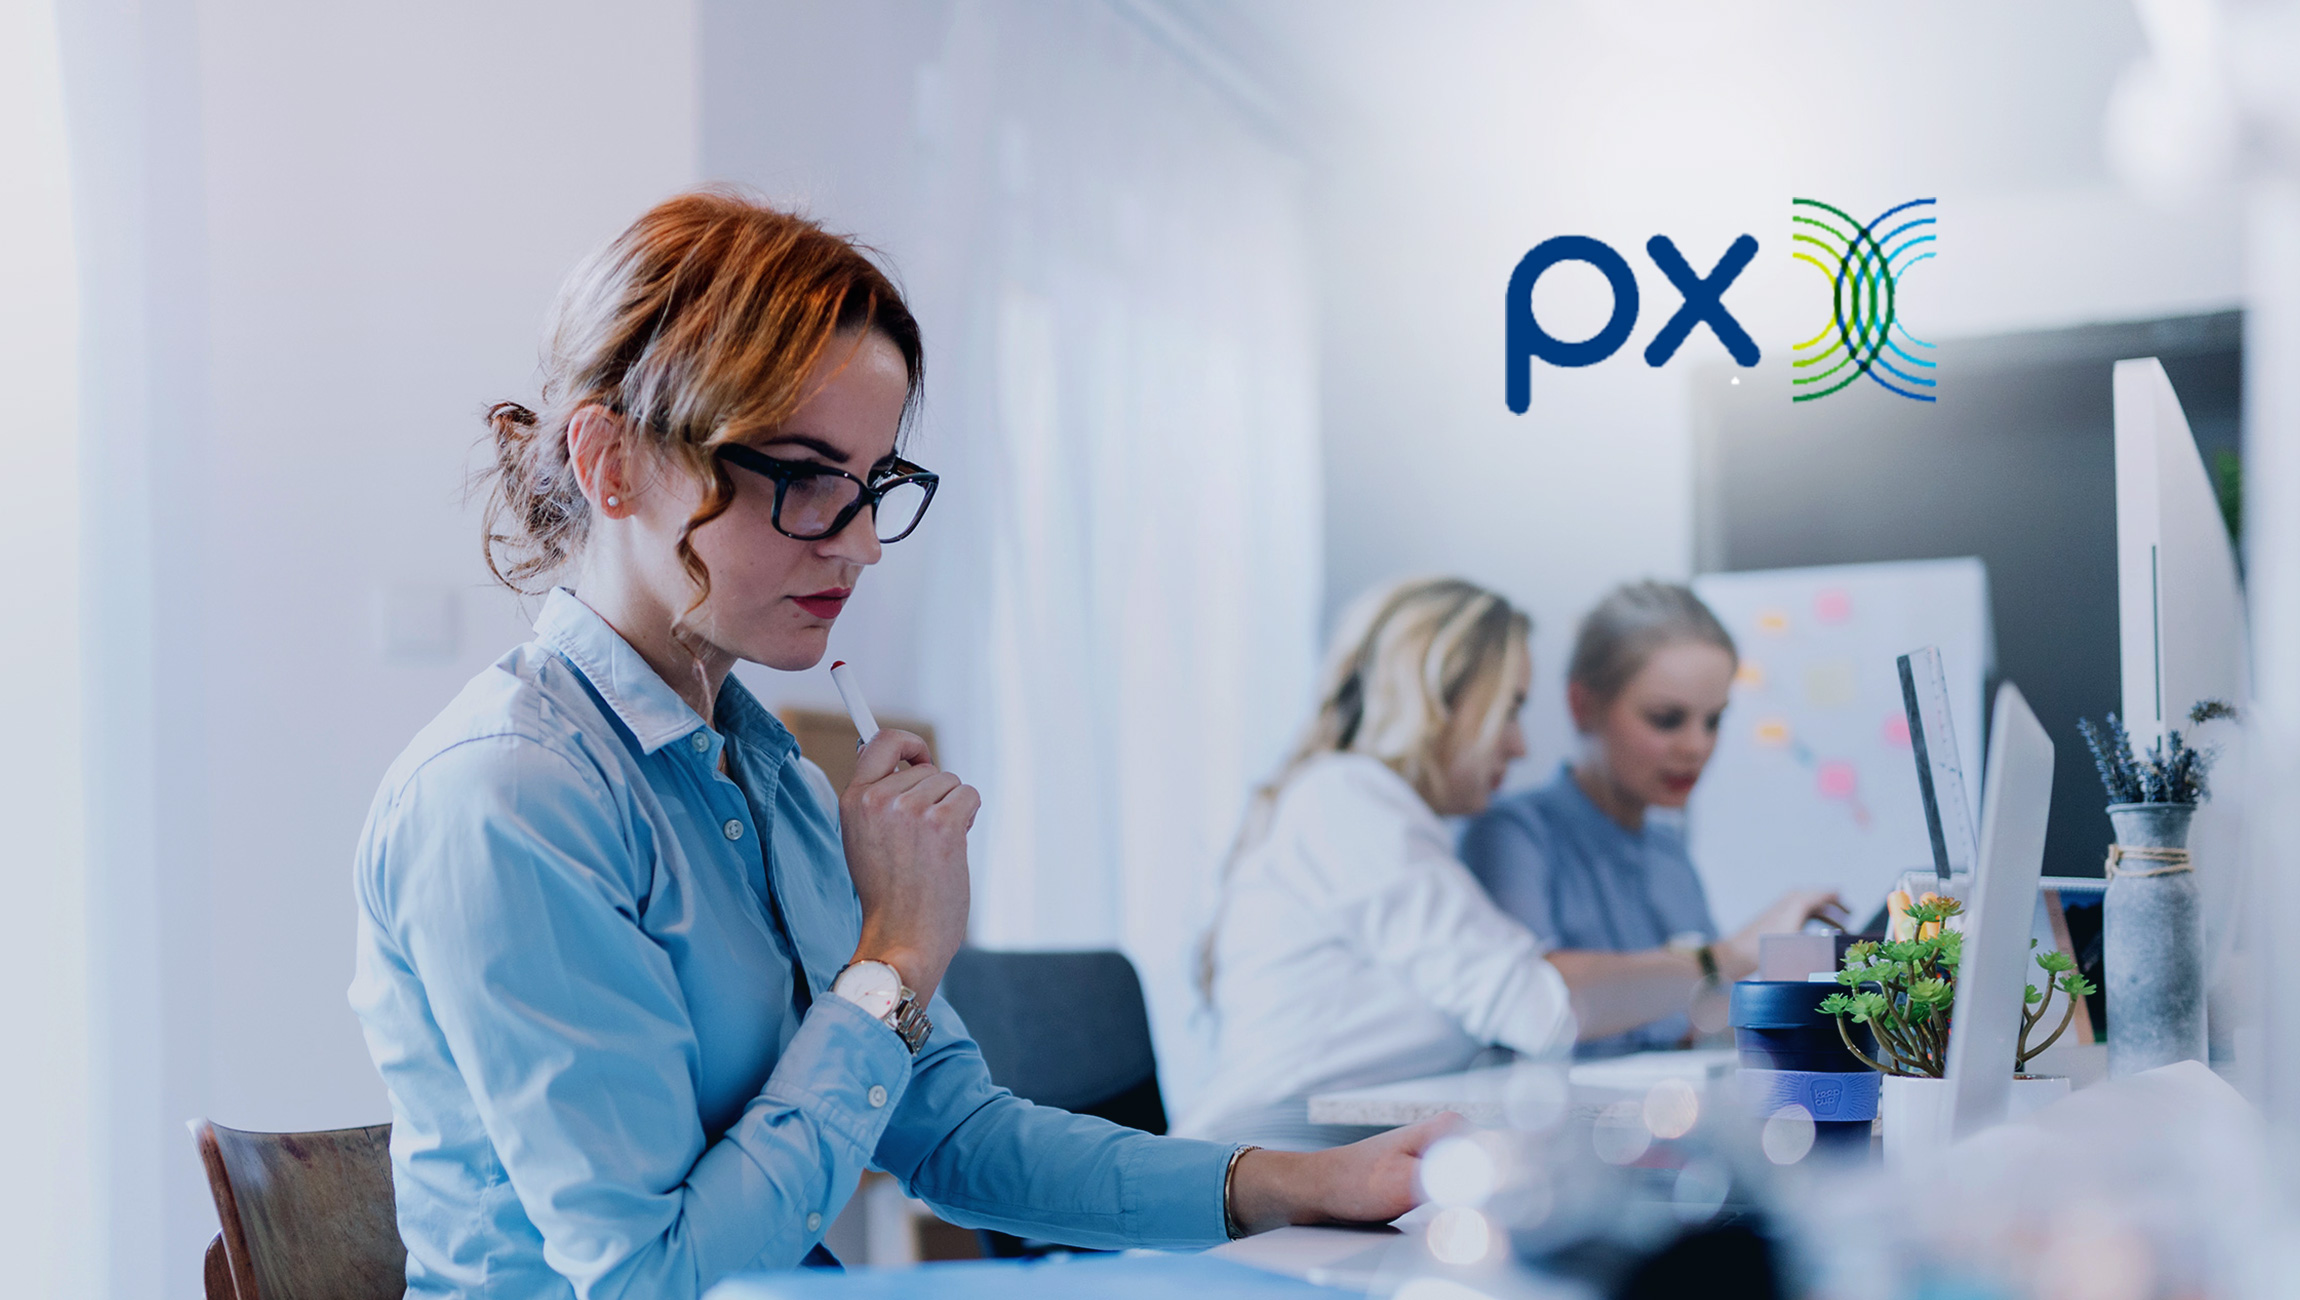 PX Expands Customer Acquisition Offering For Home Services Marketers